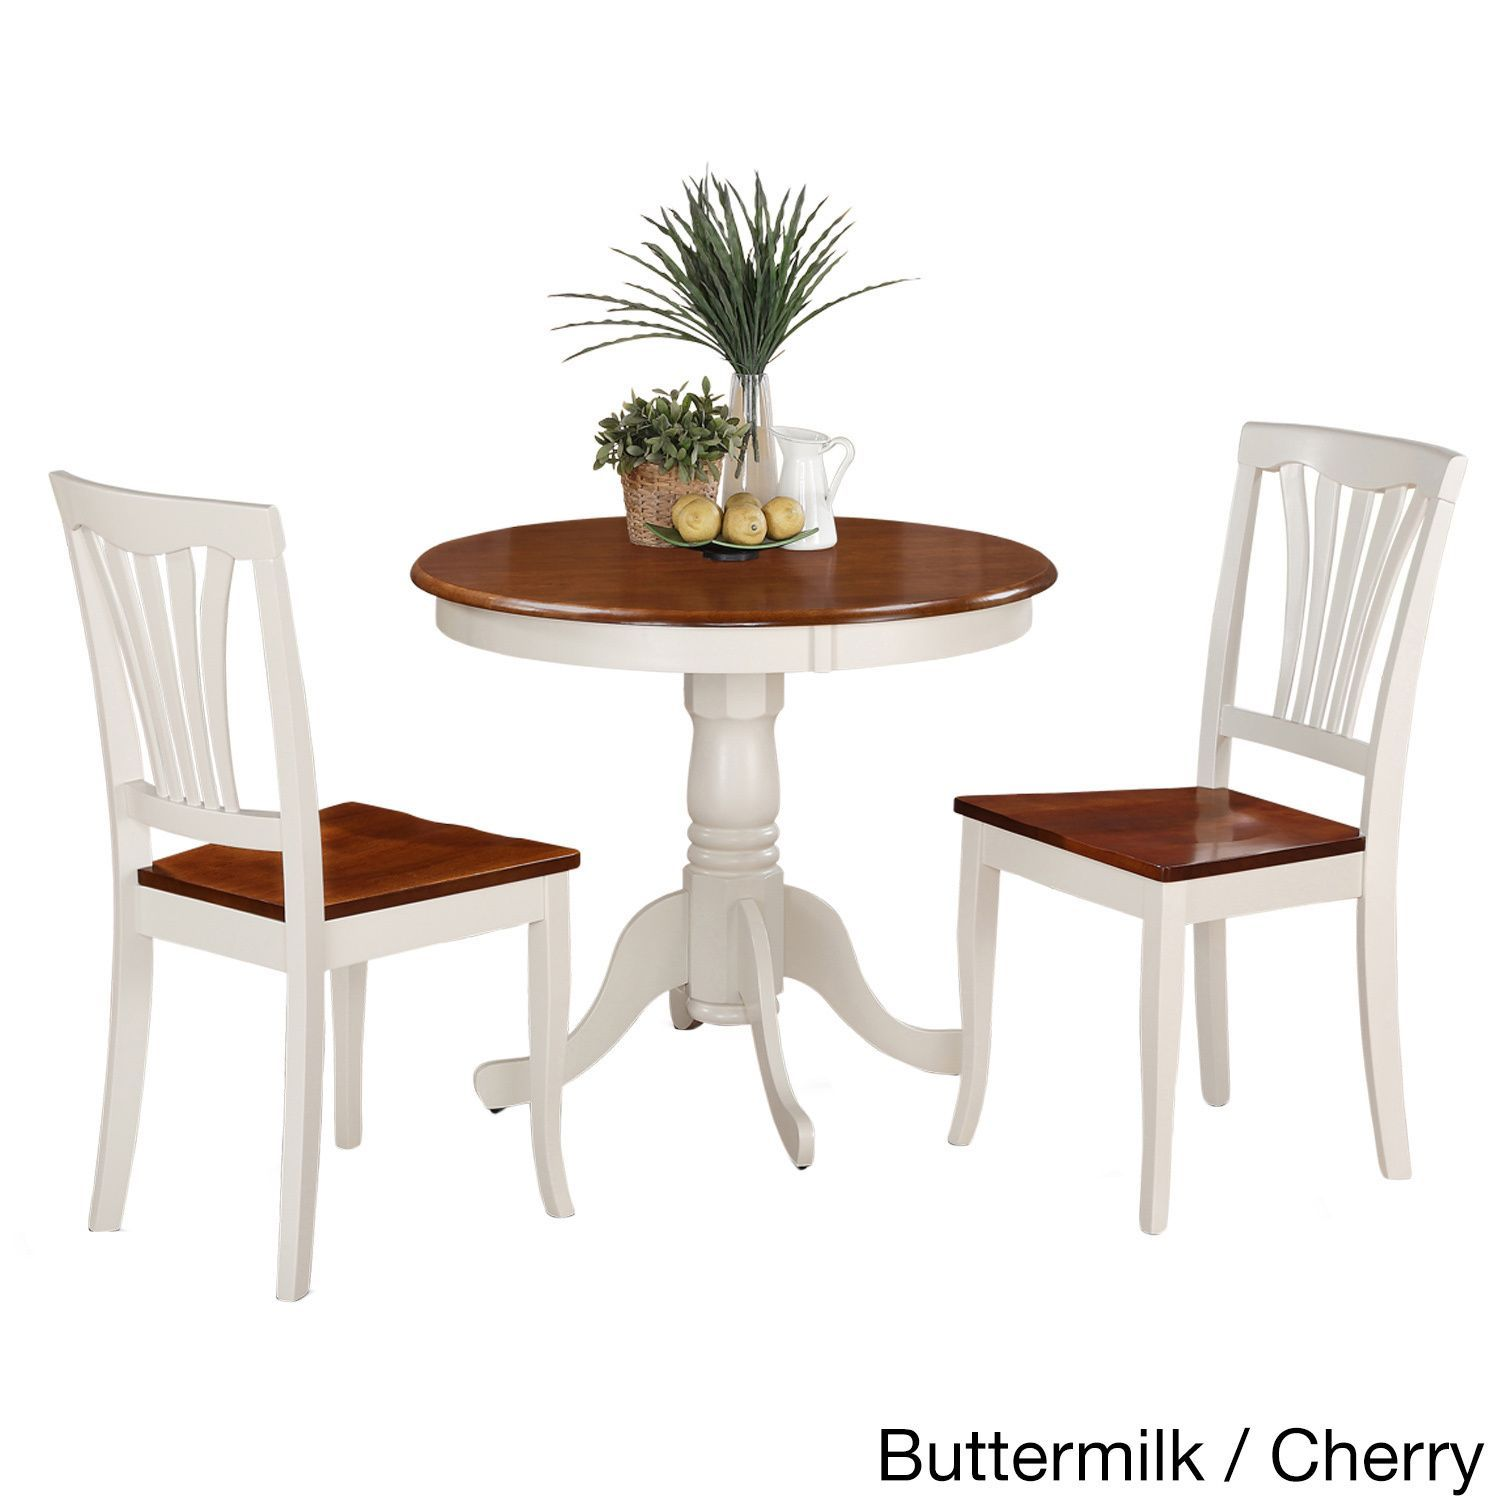 Black And Cherry Round Table And Two Dinette Chair 3 Piece: 3-Piece Kitchen Nook Dining Set-Small Kitchen Table And 2